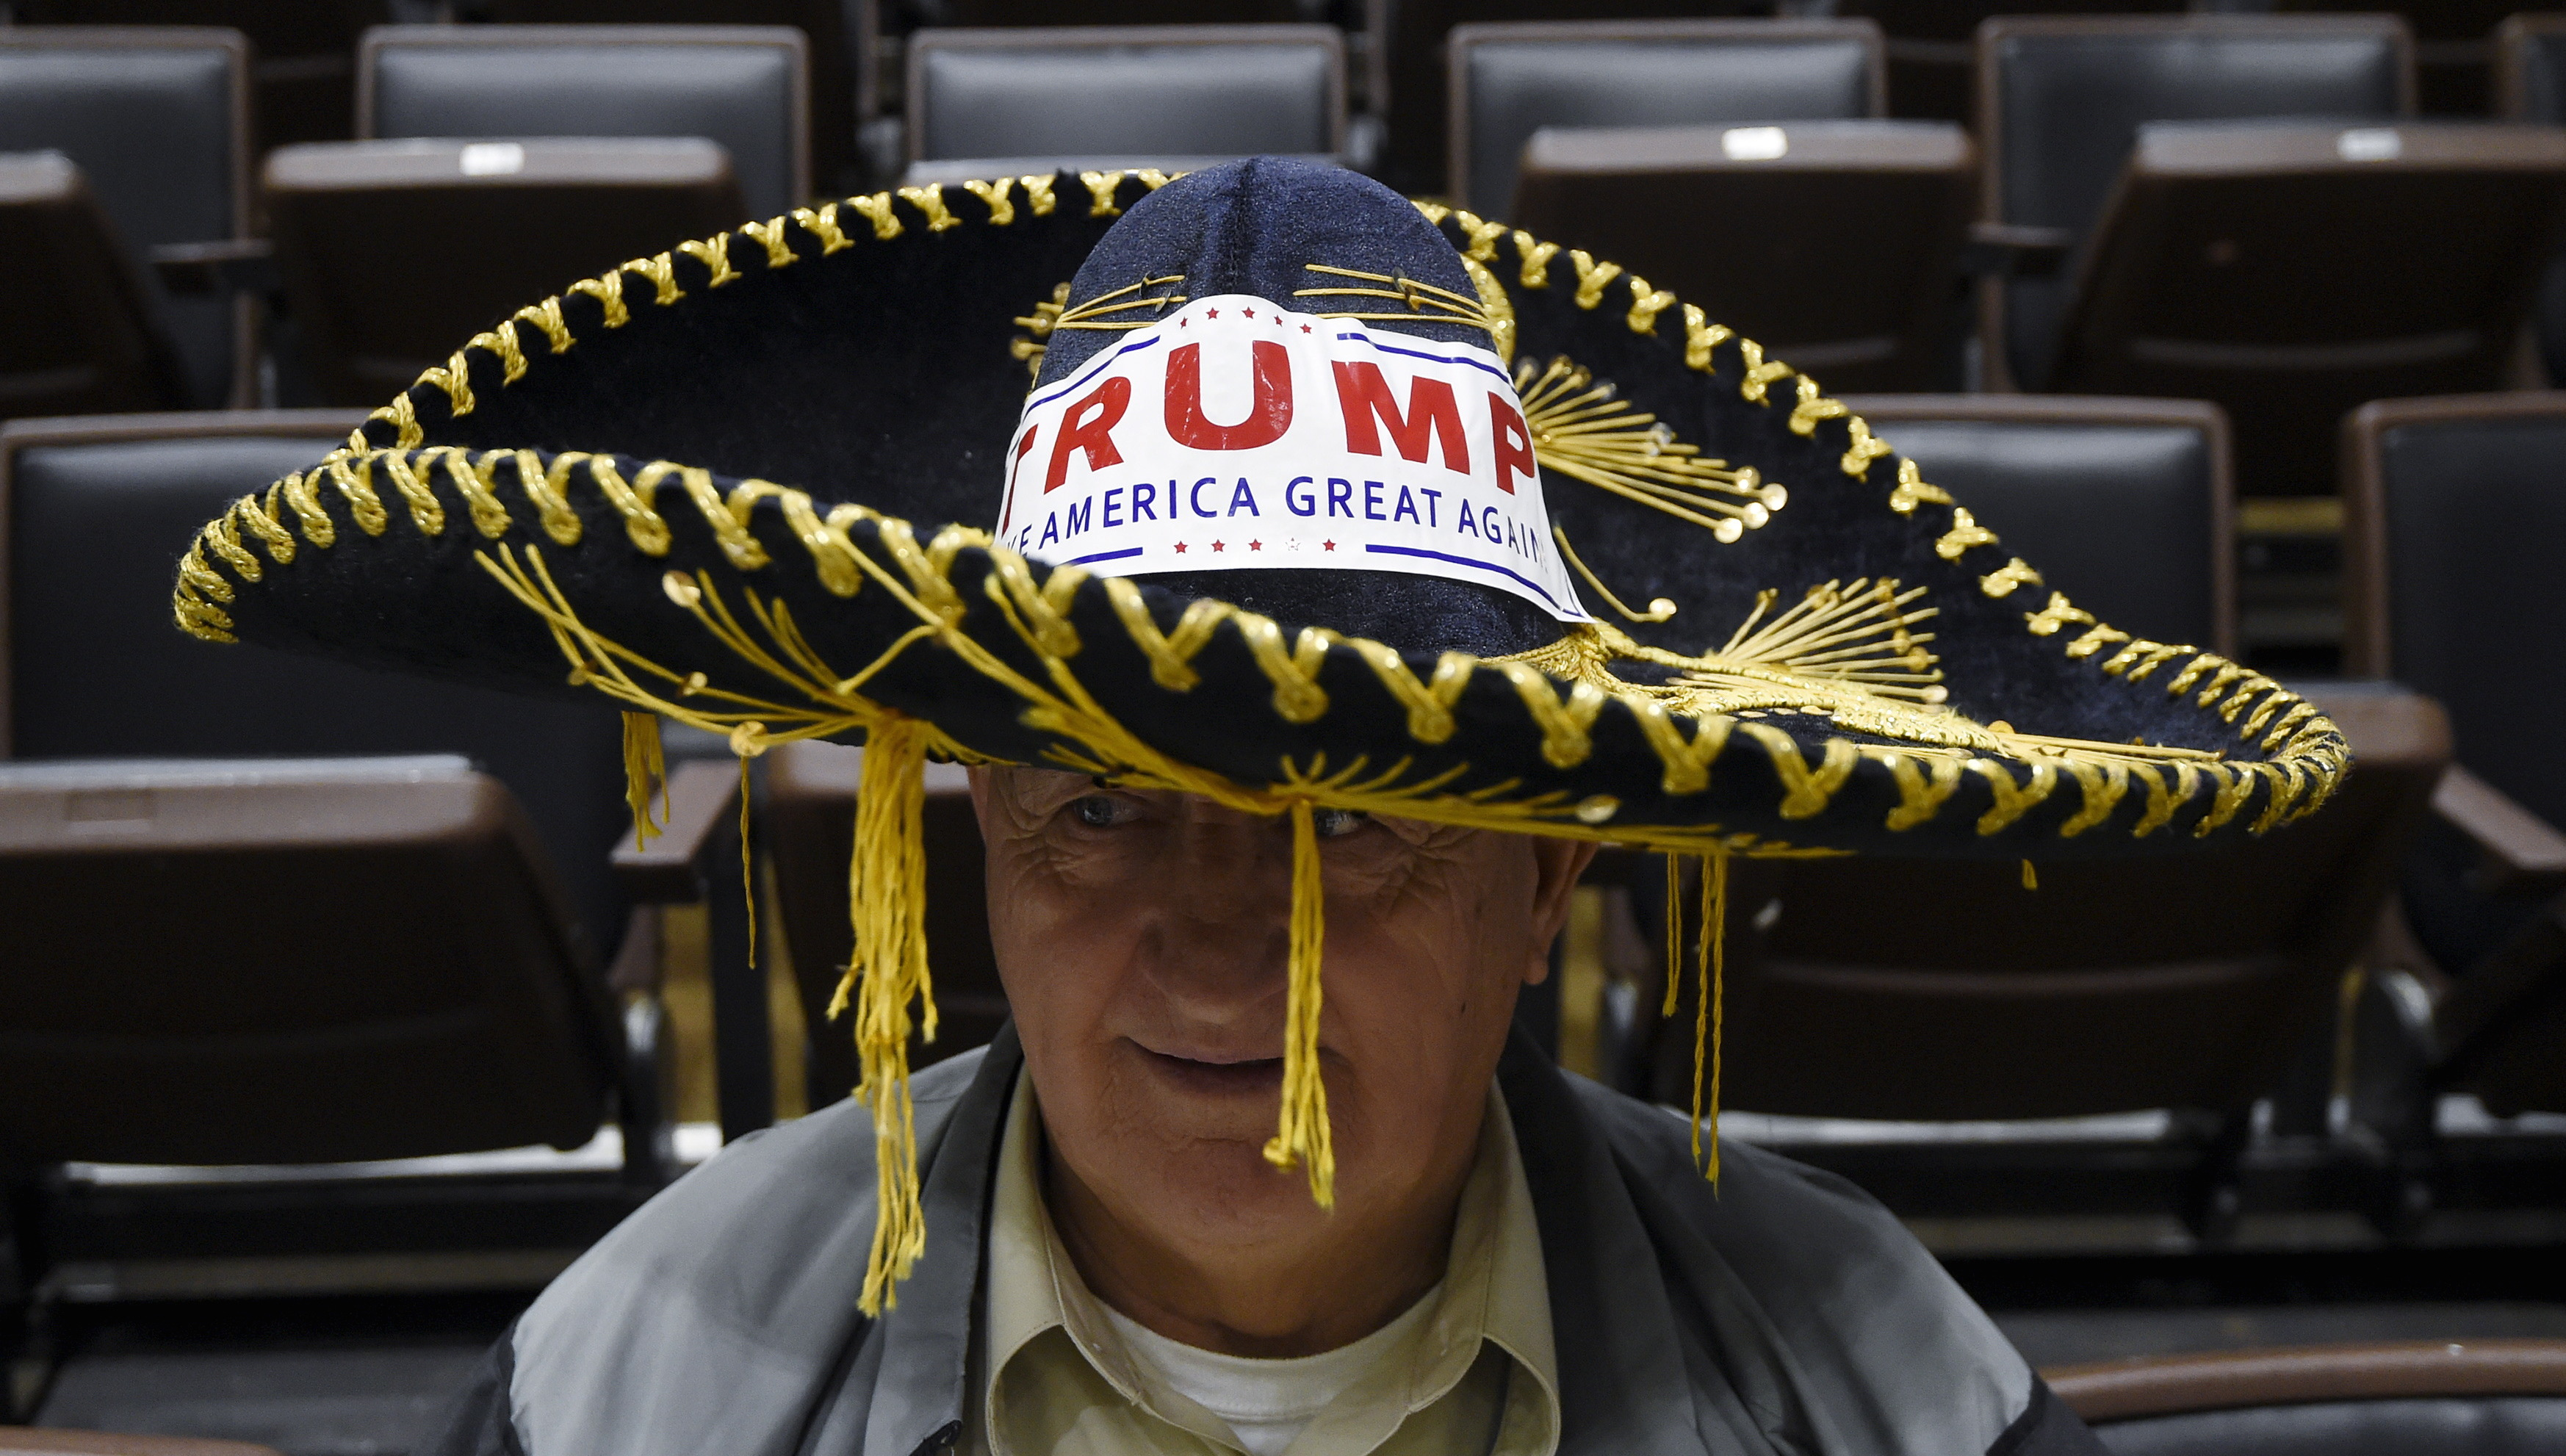 Jim Yates of Laurens, South Carolina wears a sombrero in support of U.S. Republican presidential candidate Donald Trump before a campaign rally in Spartanburg, South Carolina, November 20, 2015.